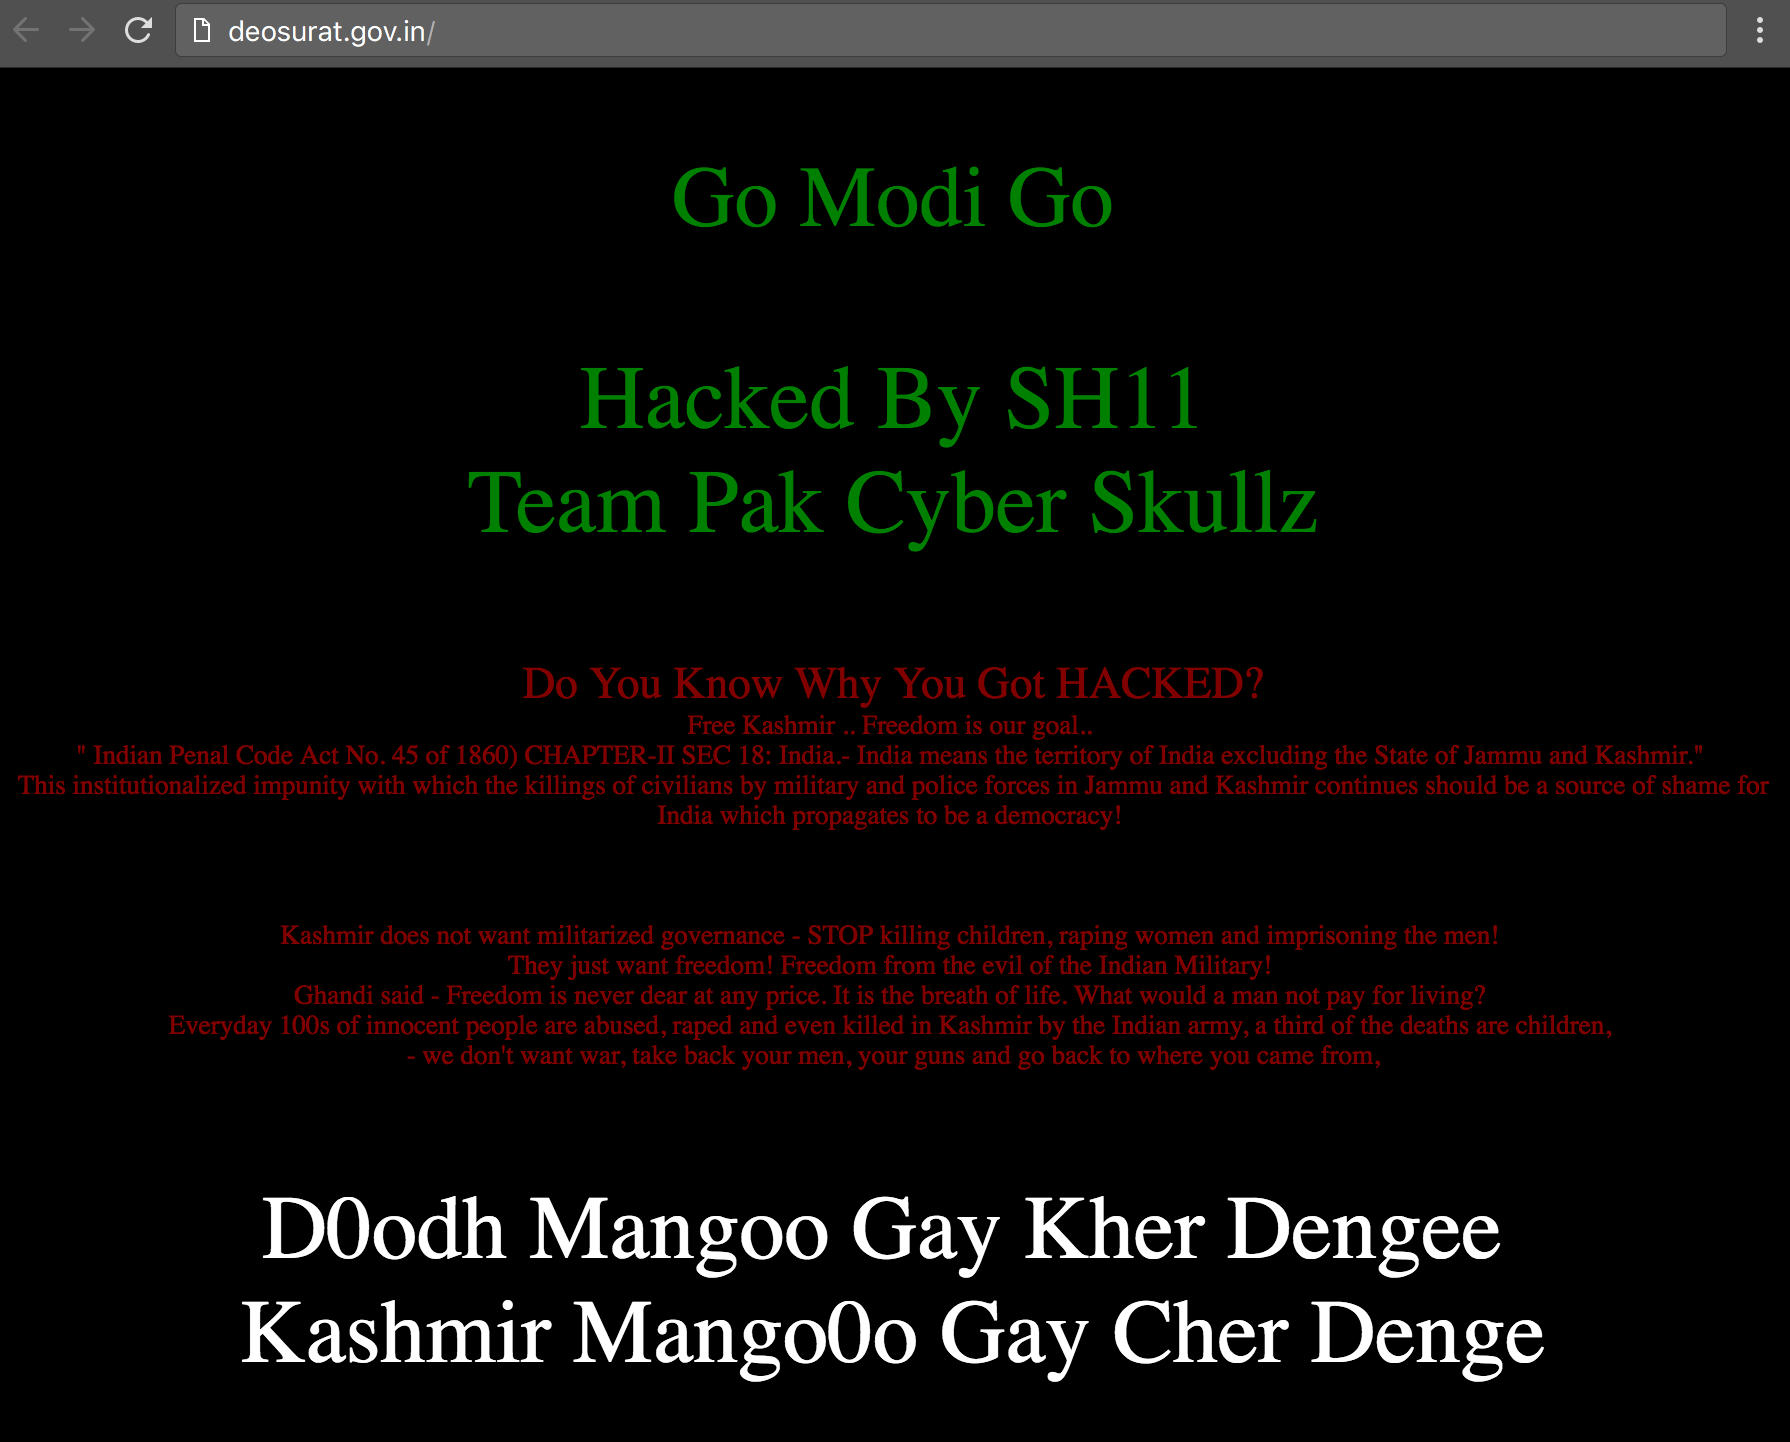 Screenshot of www.deosurat.gov.in defaced on the 4th of February, 2017 by SH11